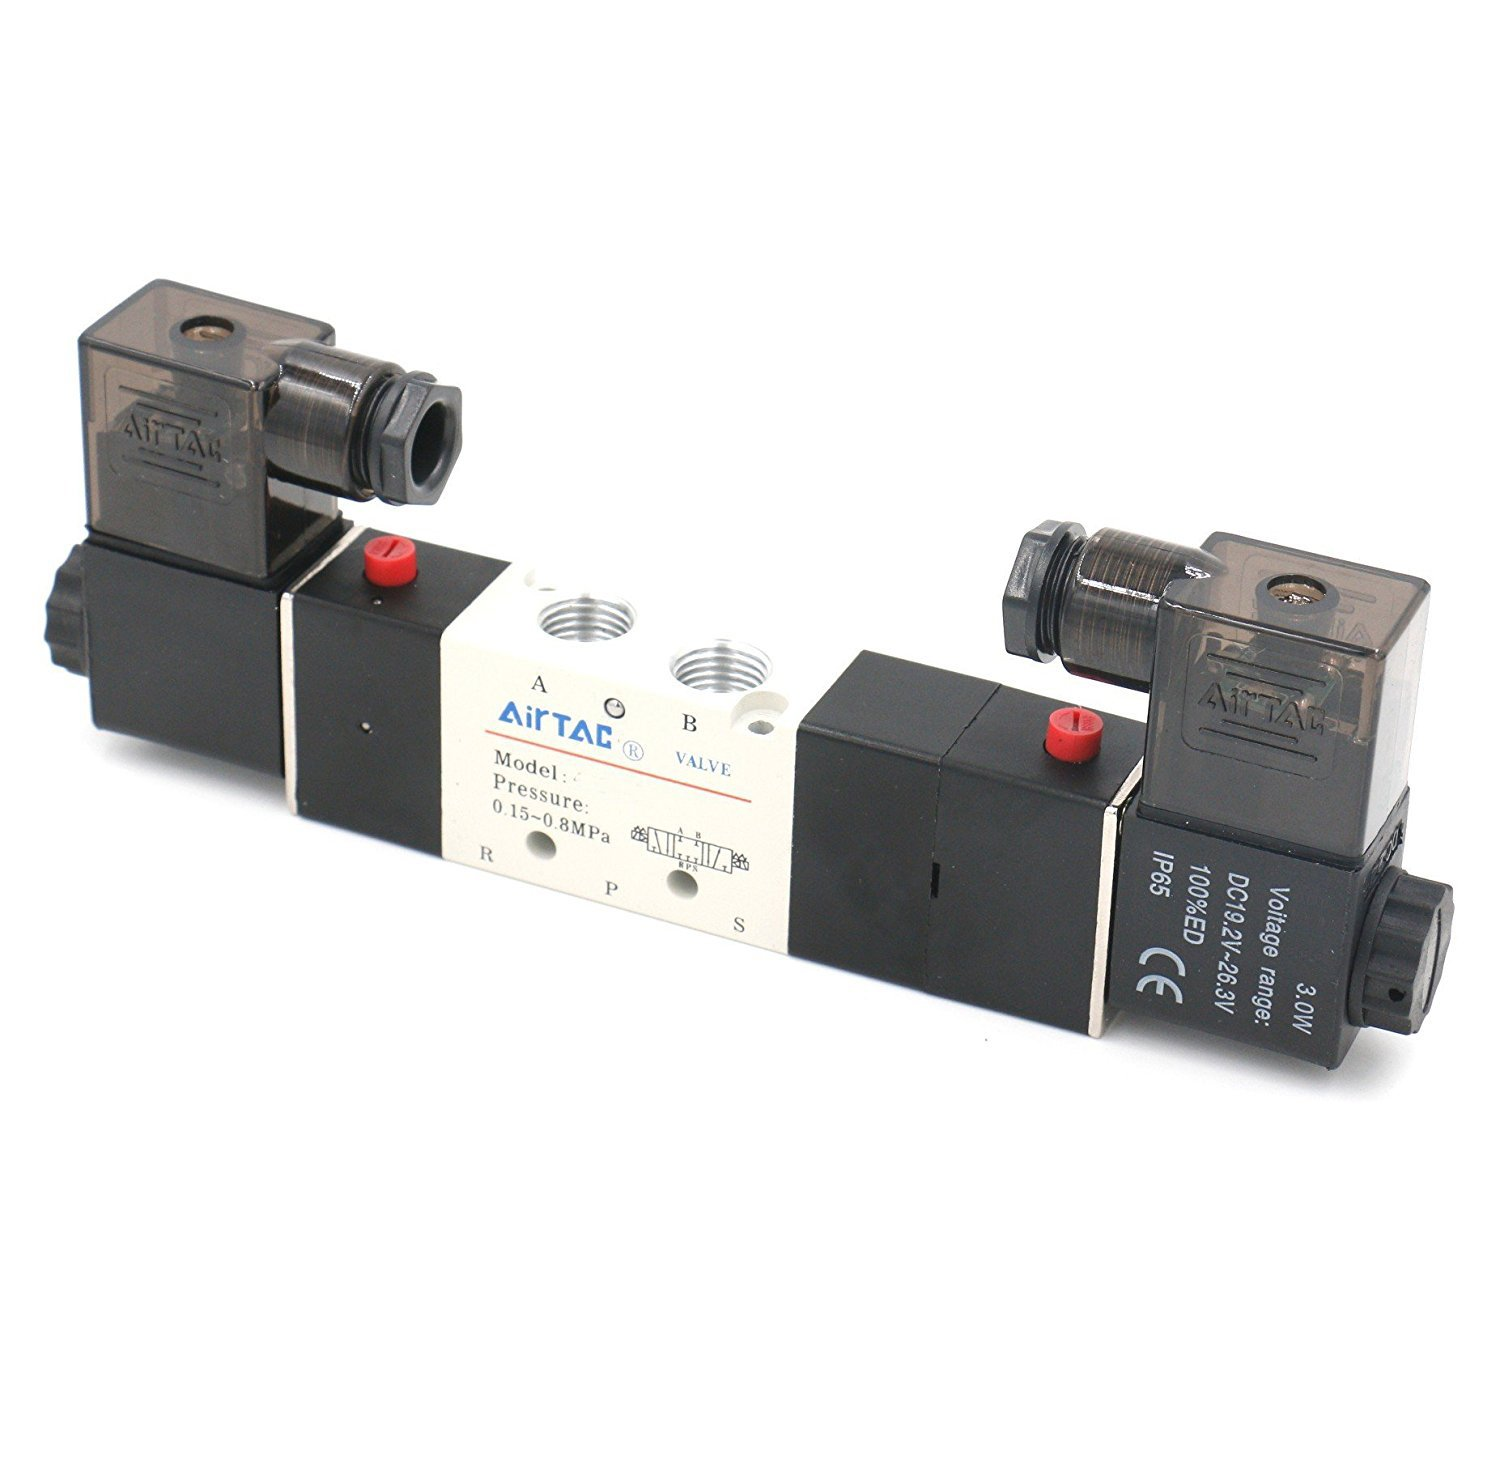 ETIAL Pneumatic Double Solenoid Valve PT 1//4 Air Valve 4V330C-08 DC 12V 5 Way 2 Position